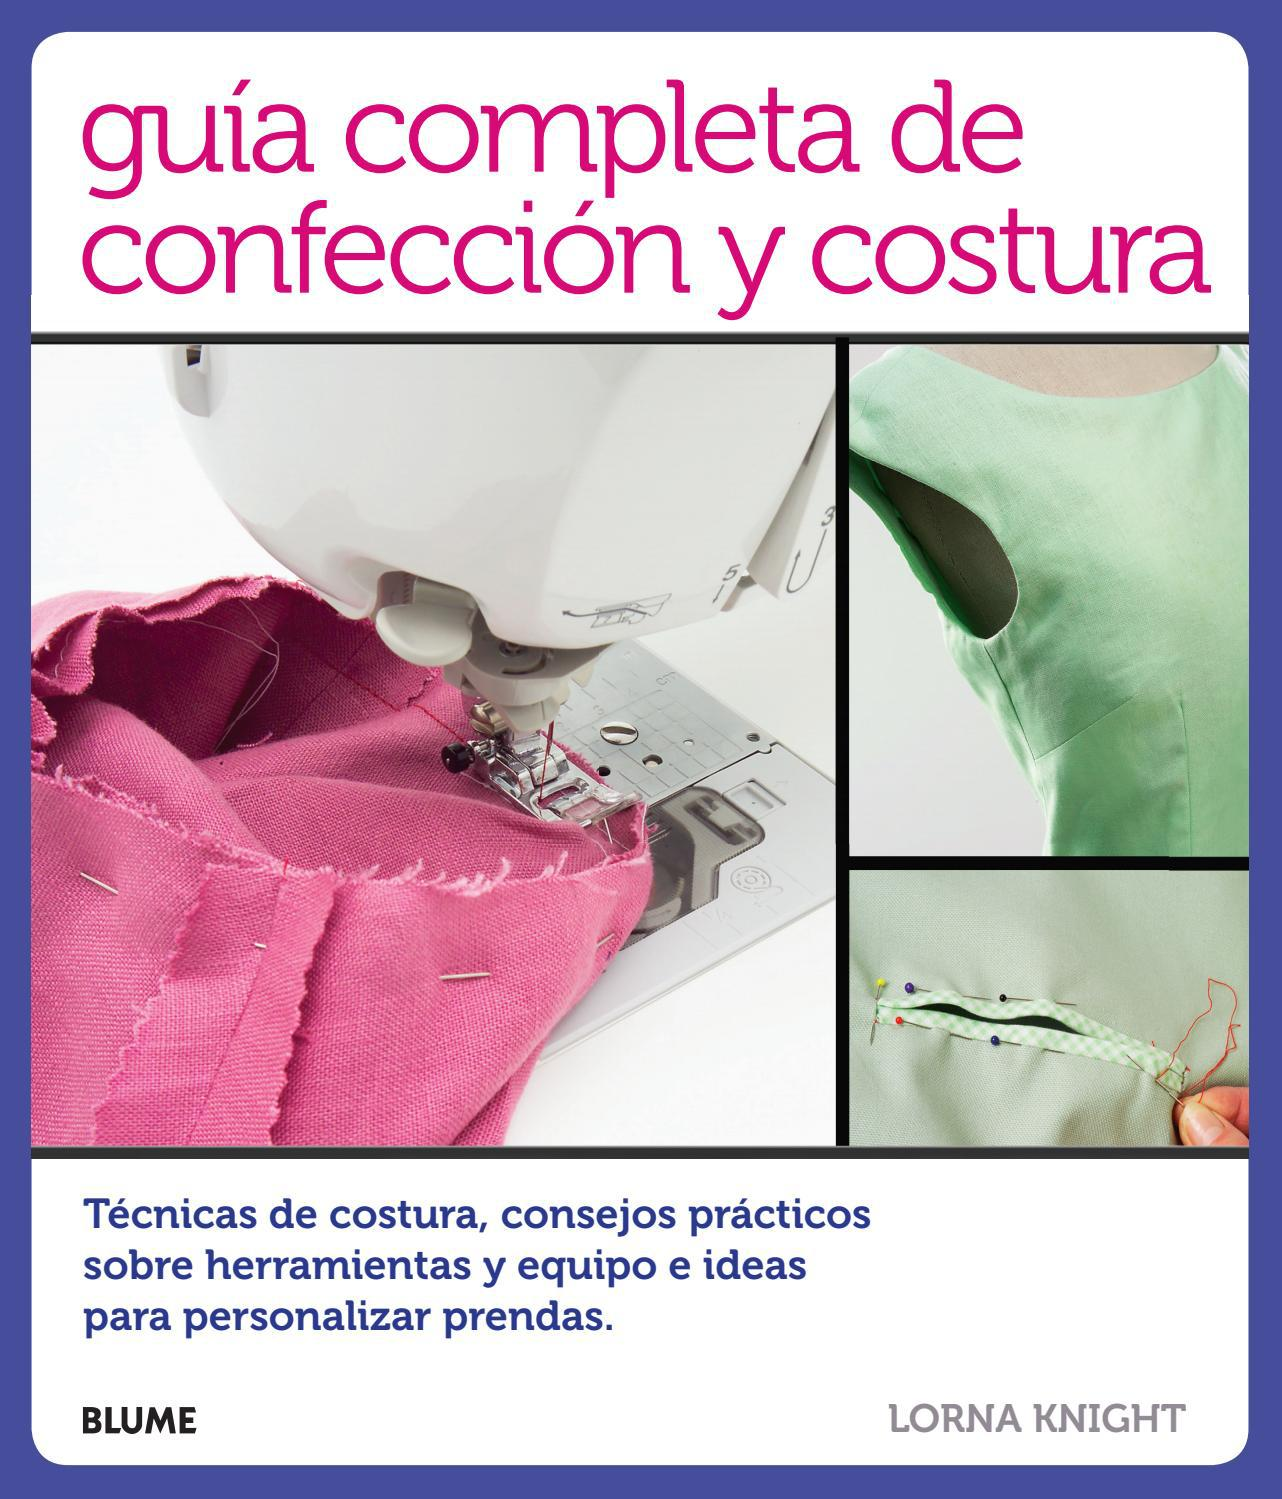 Guía completa de confección y costura by Editorial Blume - issuu